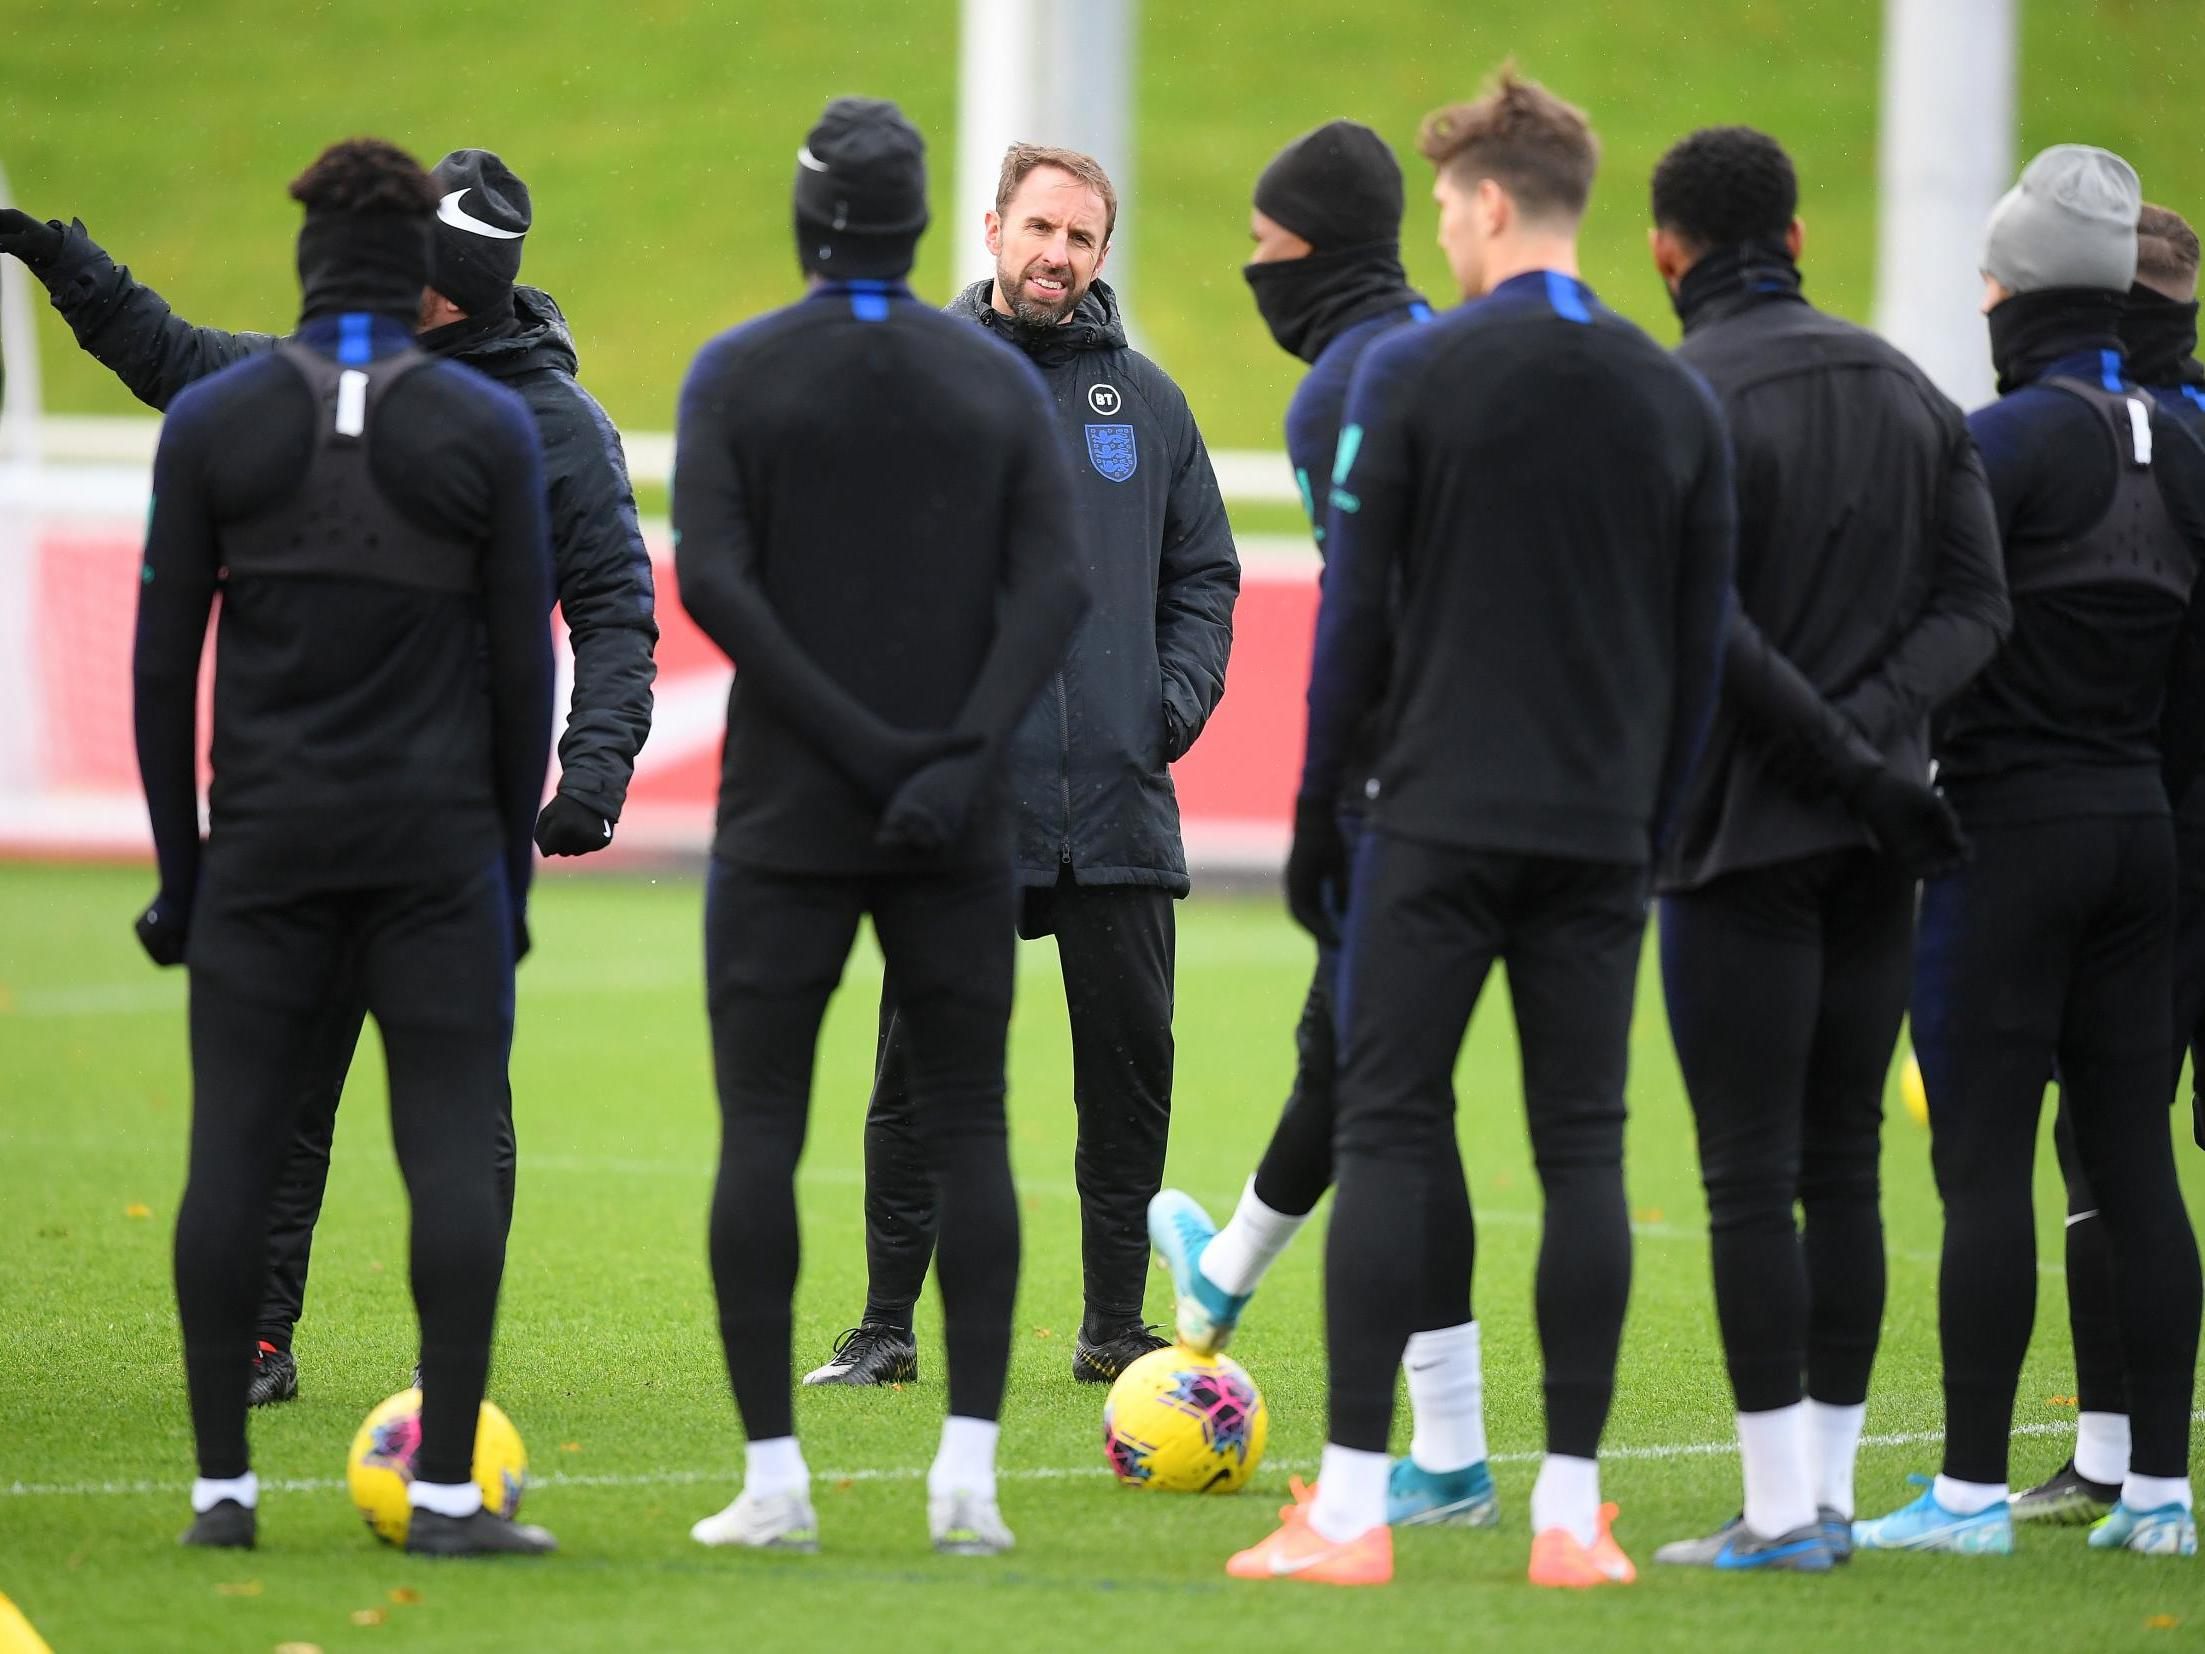 England to play Italy in Euro 2020 warm-up